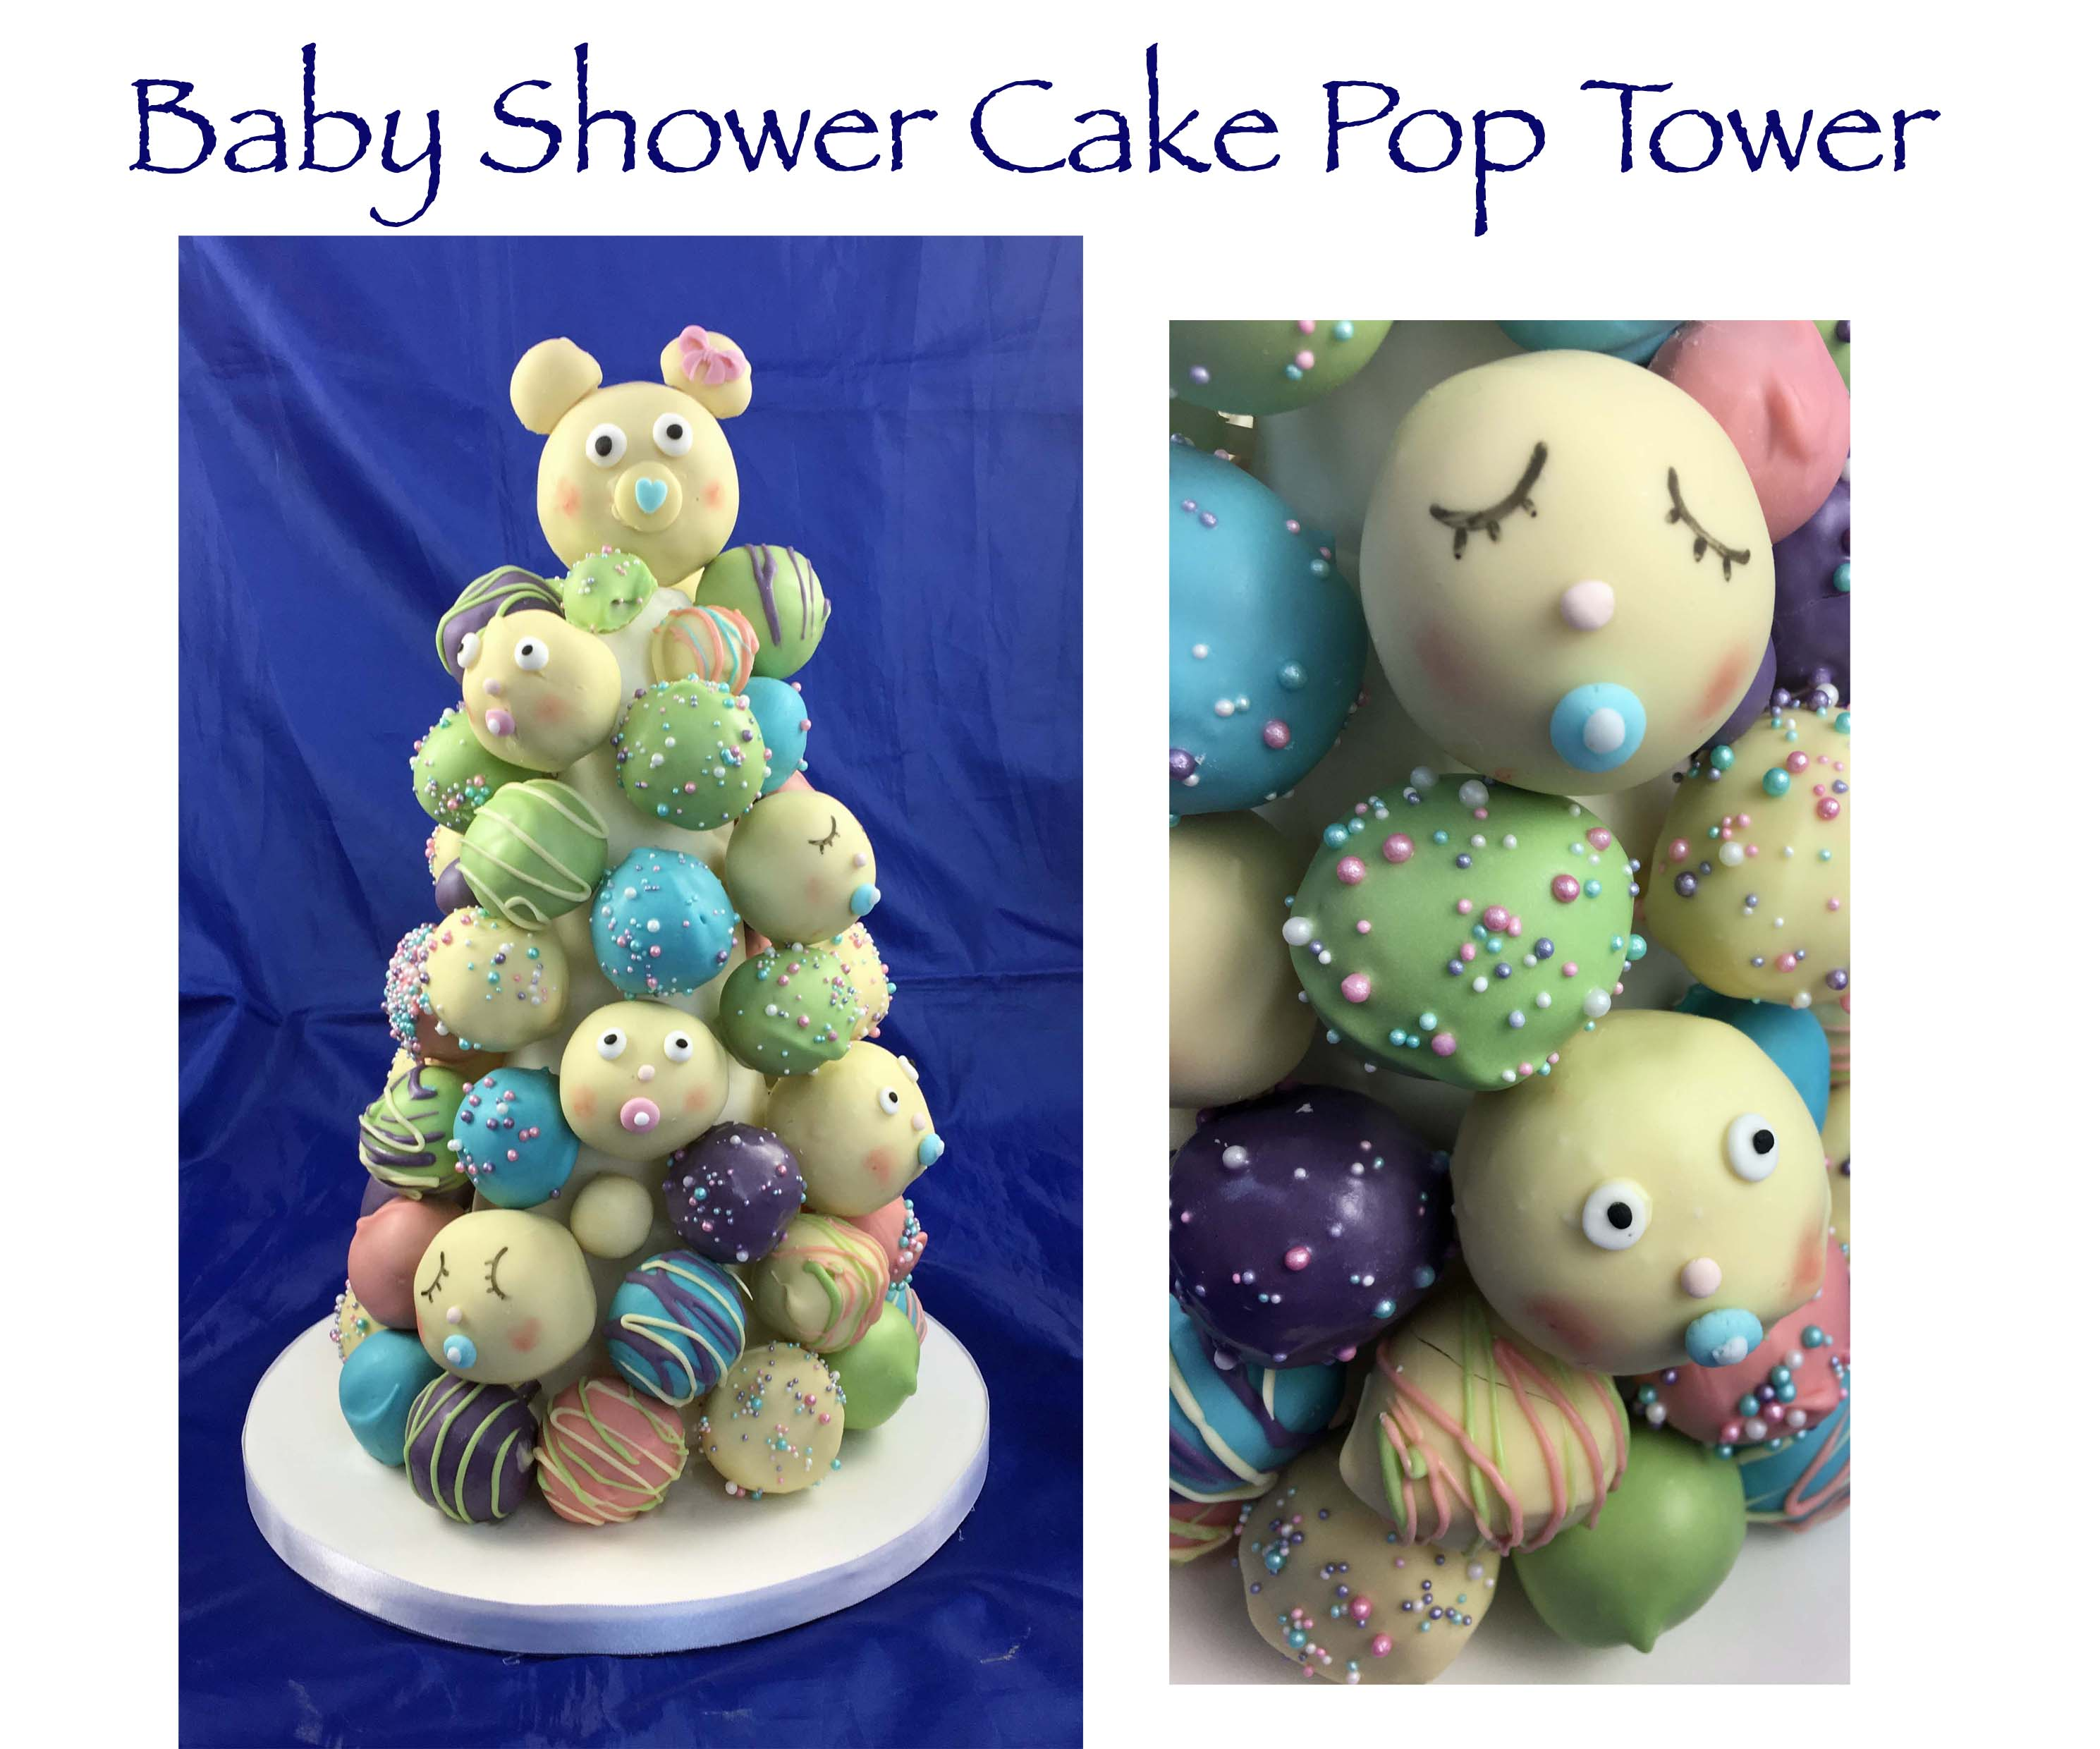 Baby Shower Cake Pop Tower